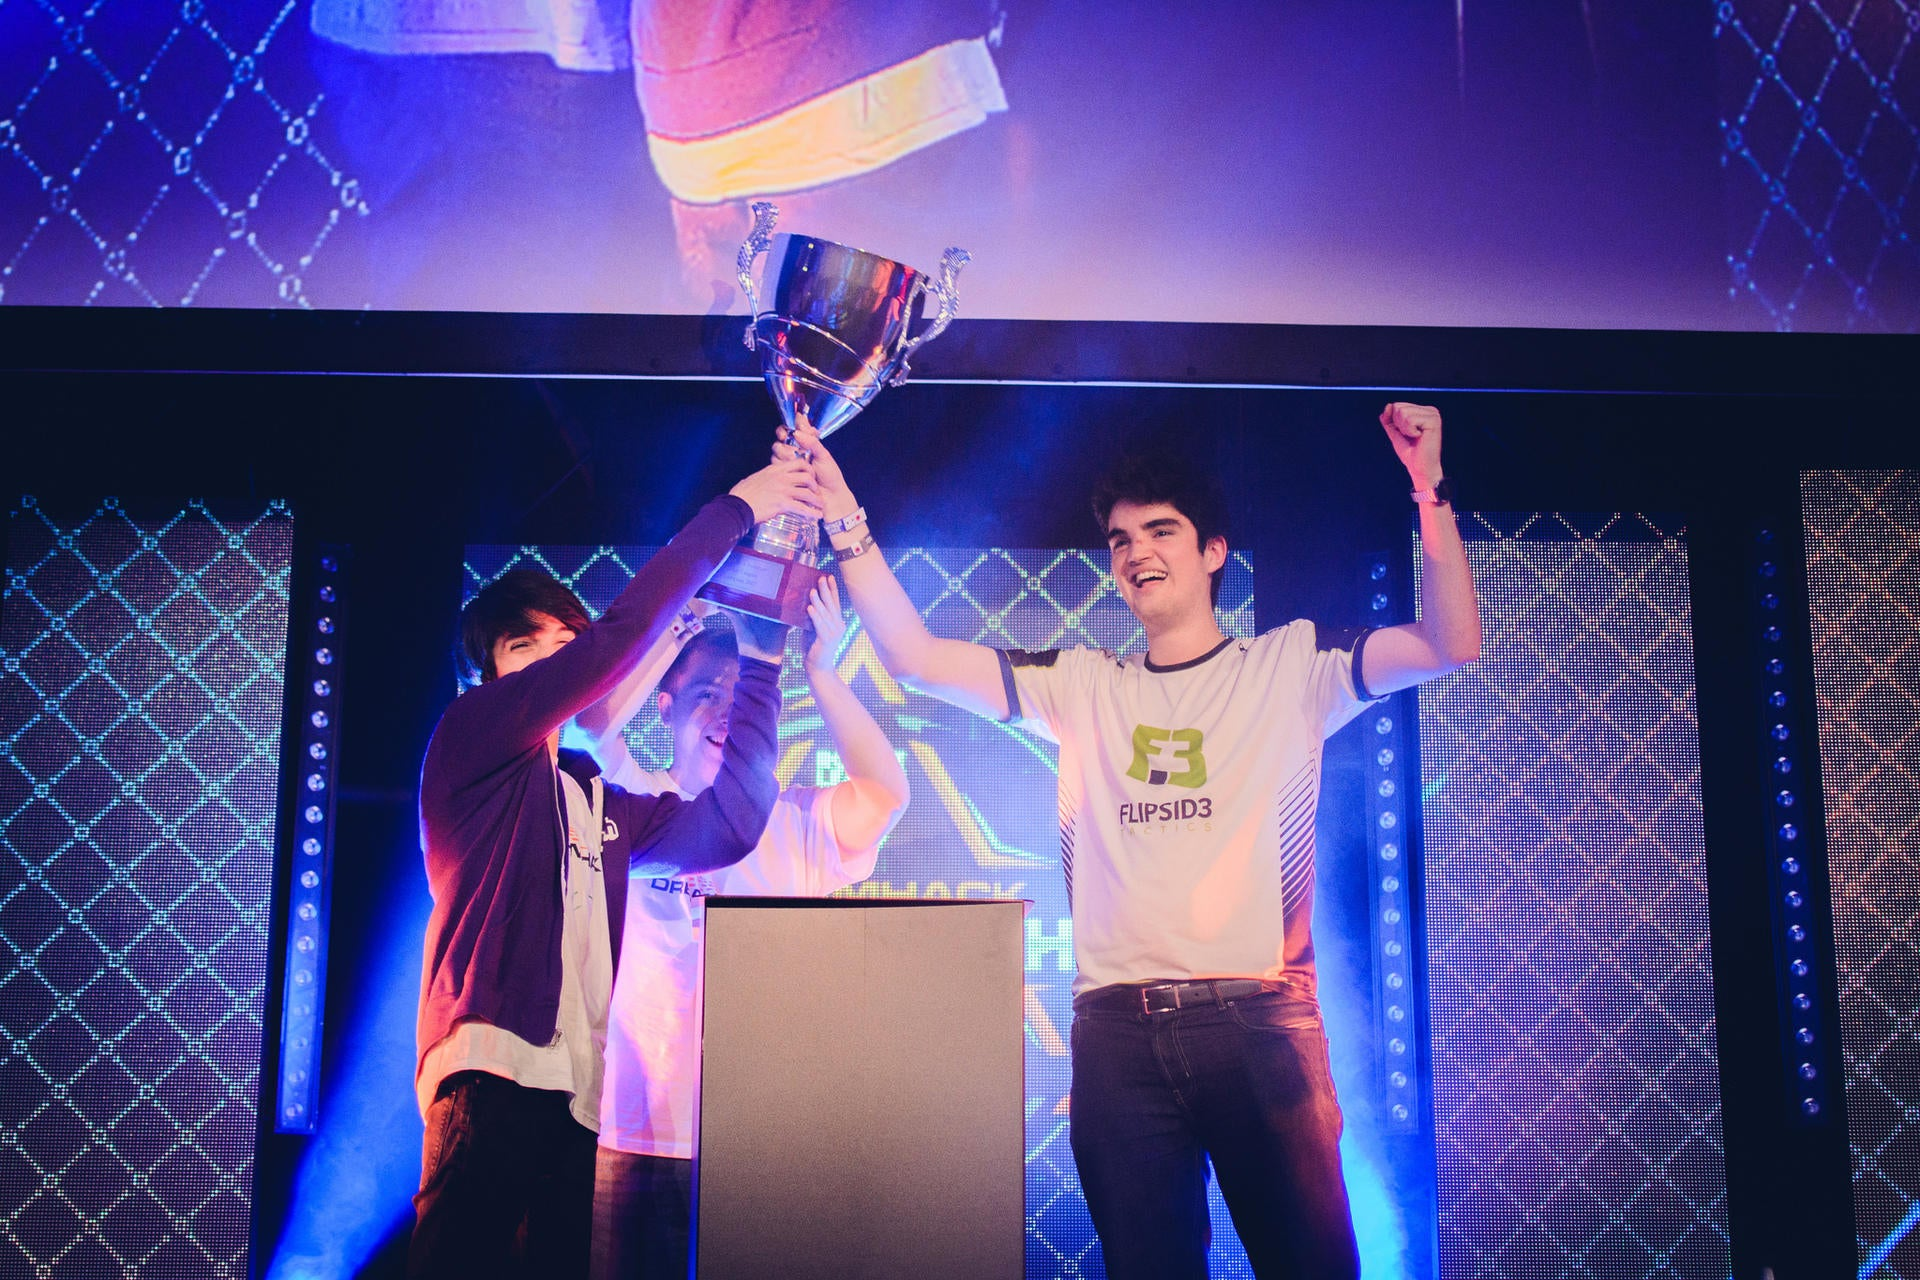 FlipSid3 Tactics Wins The DreamHack Summer Rocket League Championship Image